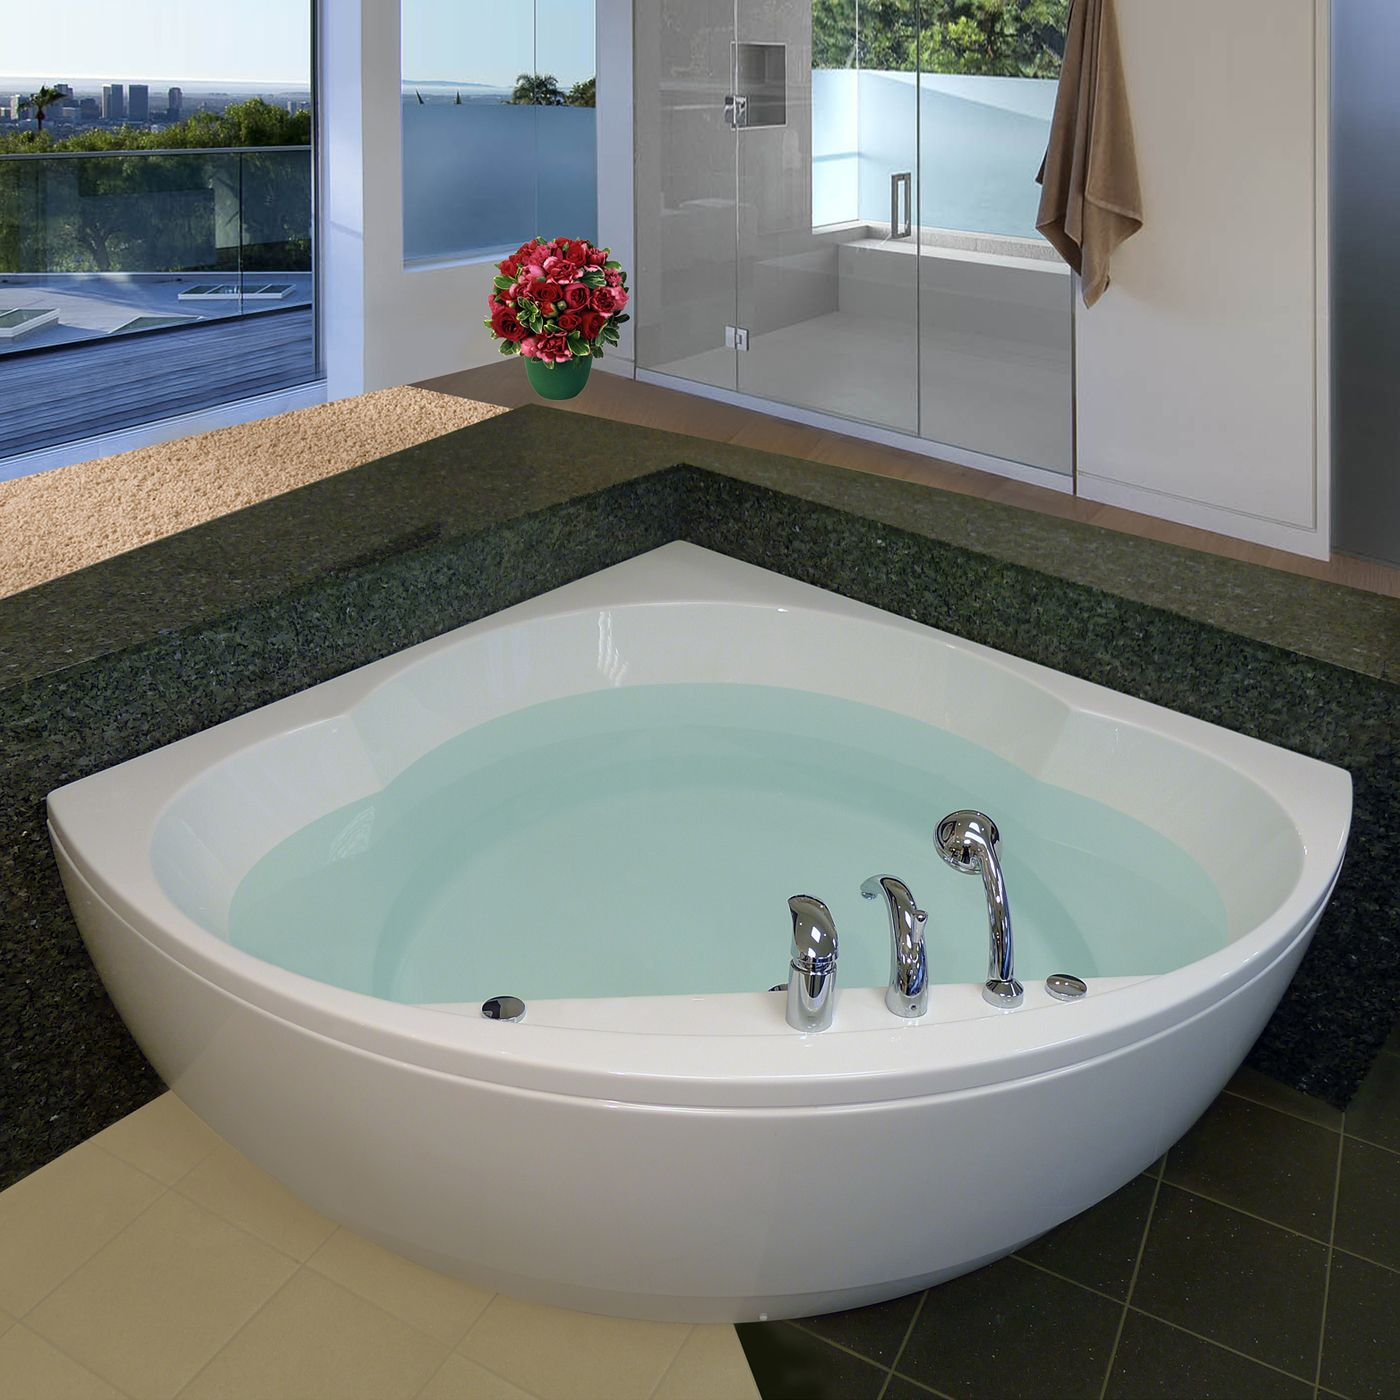 Shop Aquatica Cleo-Wht Corner Soaking Bathtub at ATG Stores. Browse ...